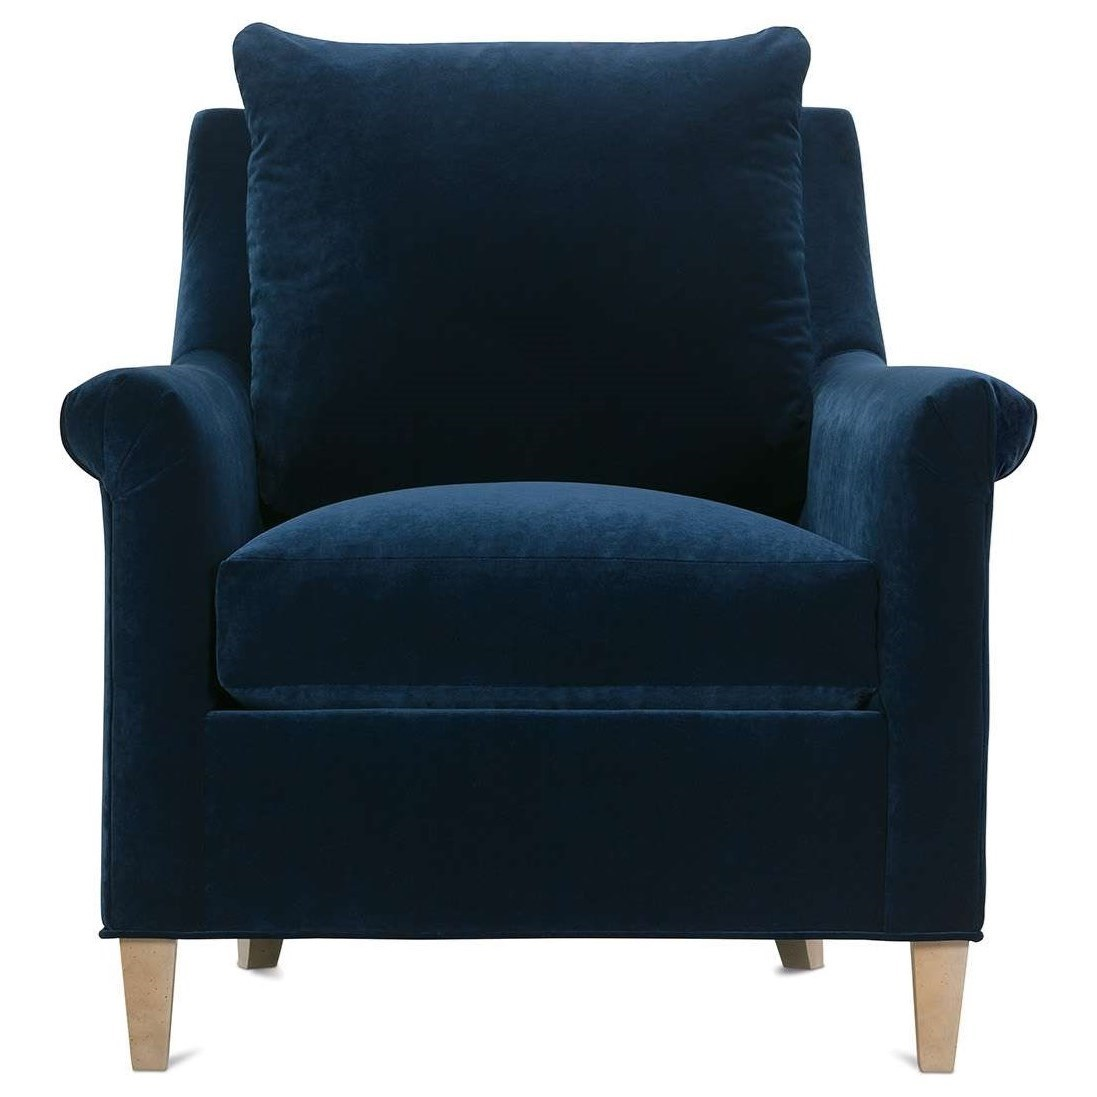 Penelope Chair by Robin Bruce at Steger's Furniture